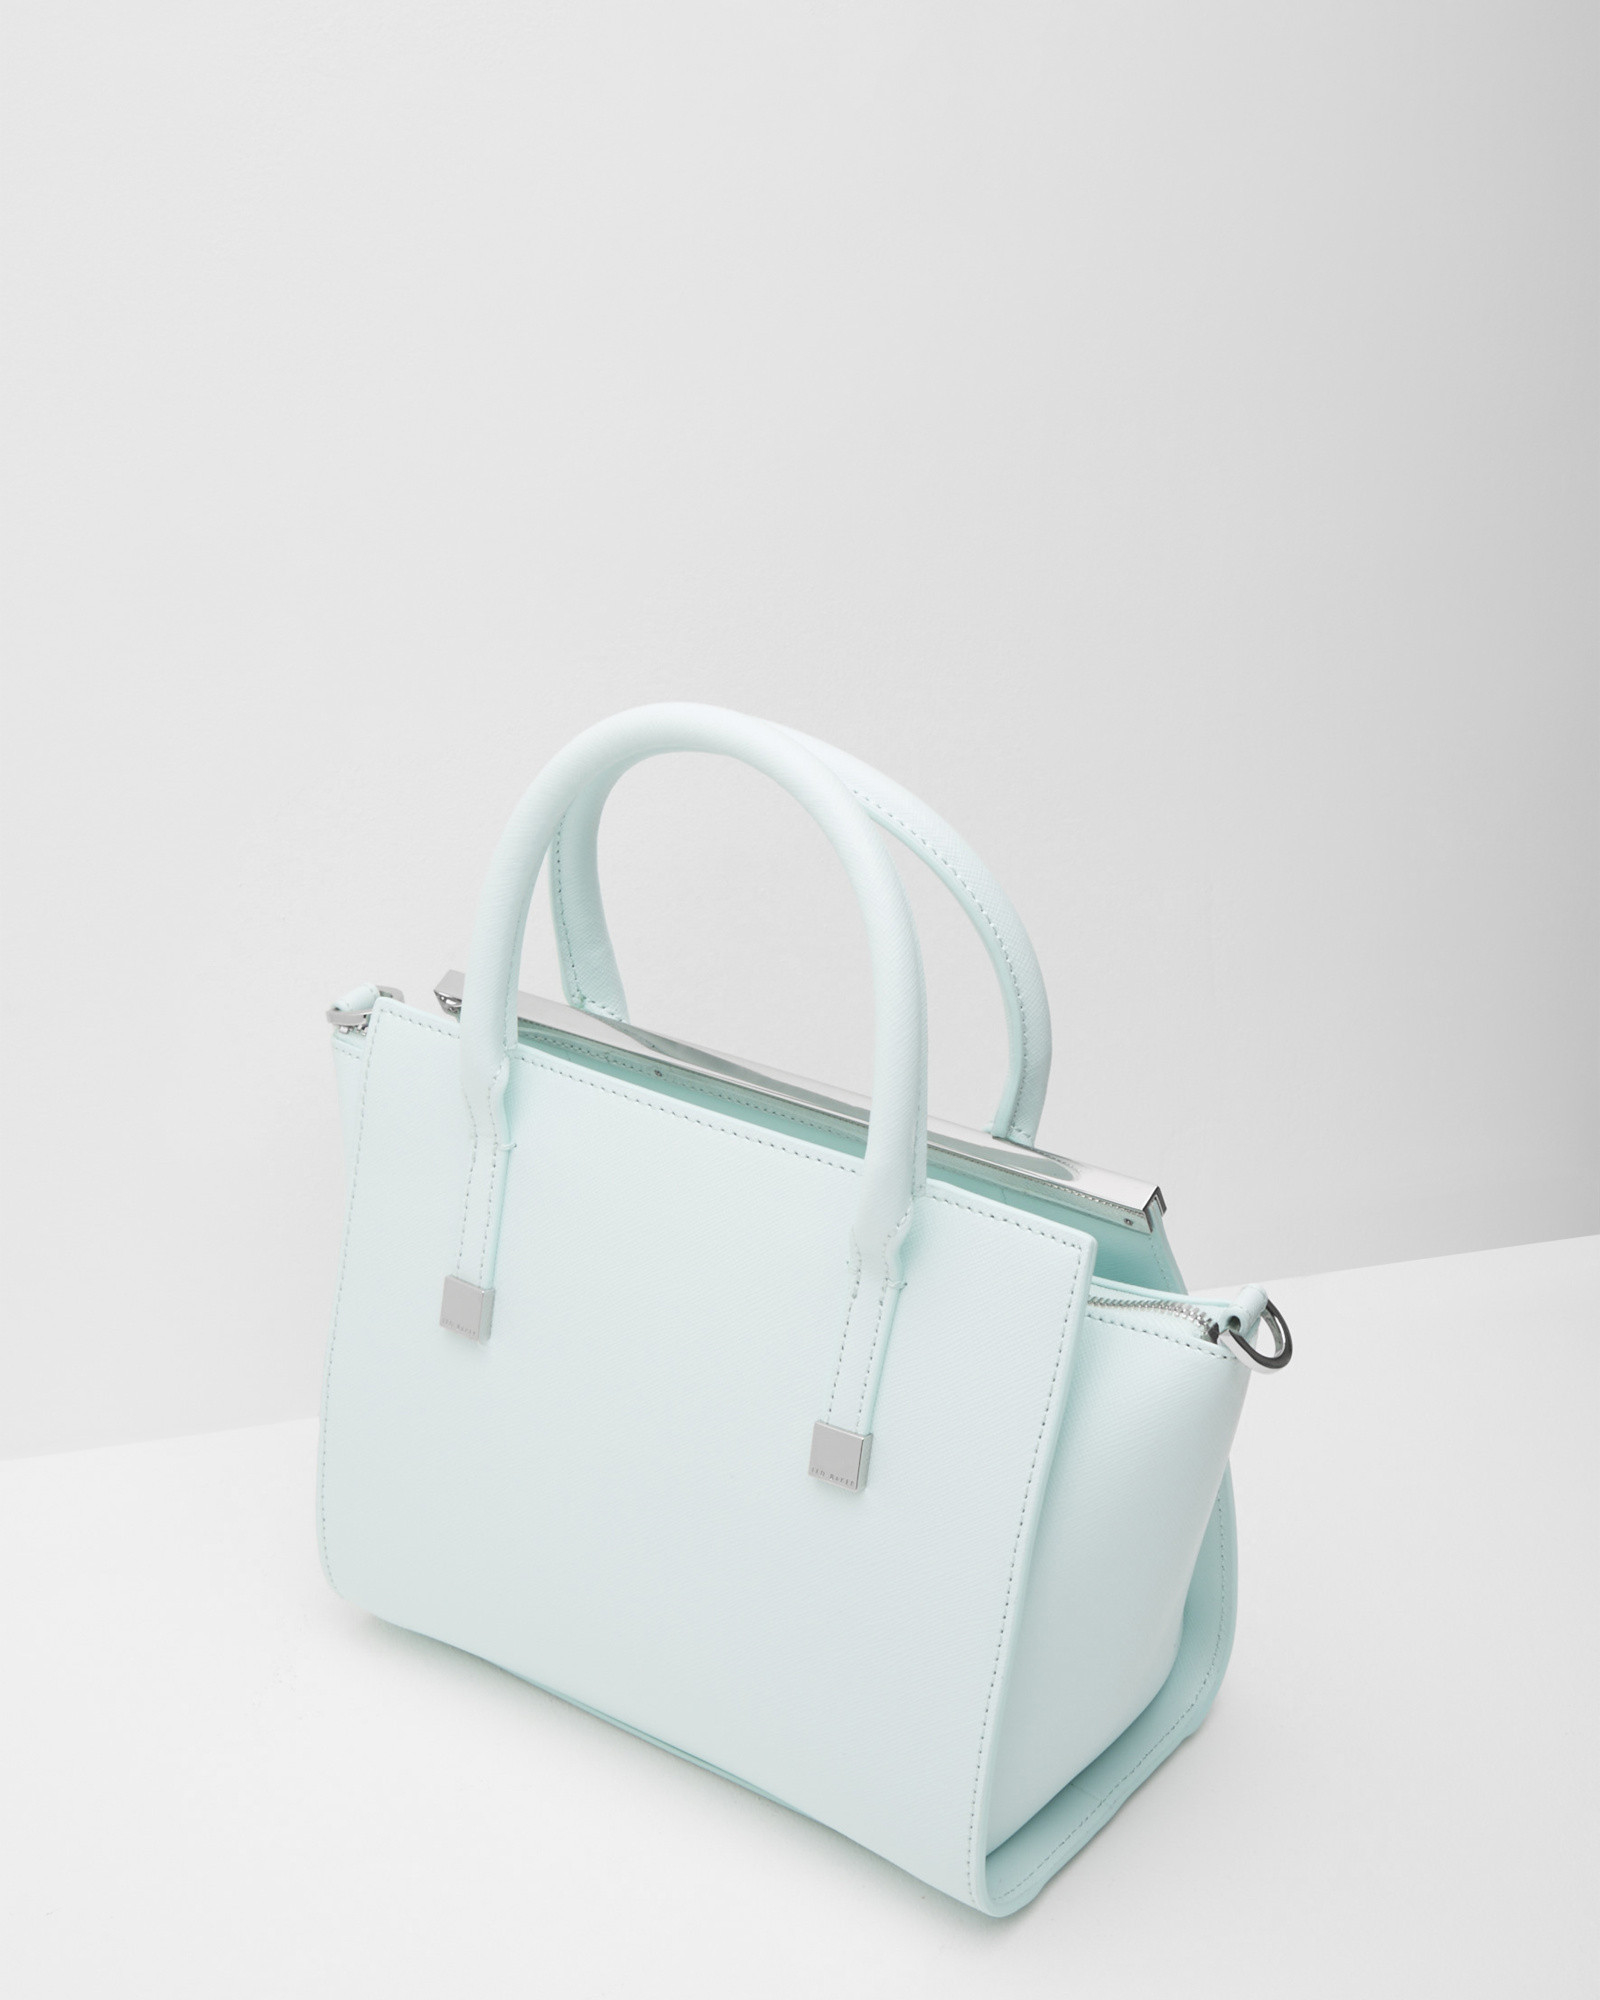 Ted baker Crosshatch Leather Tote Bag in Green | Lyst